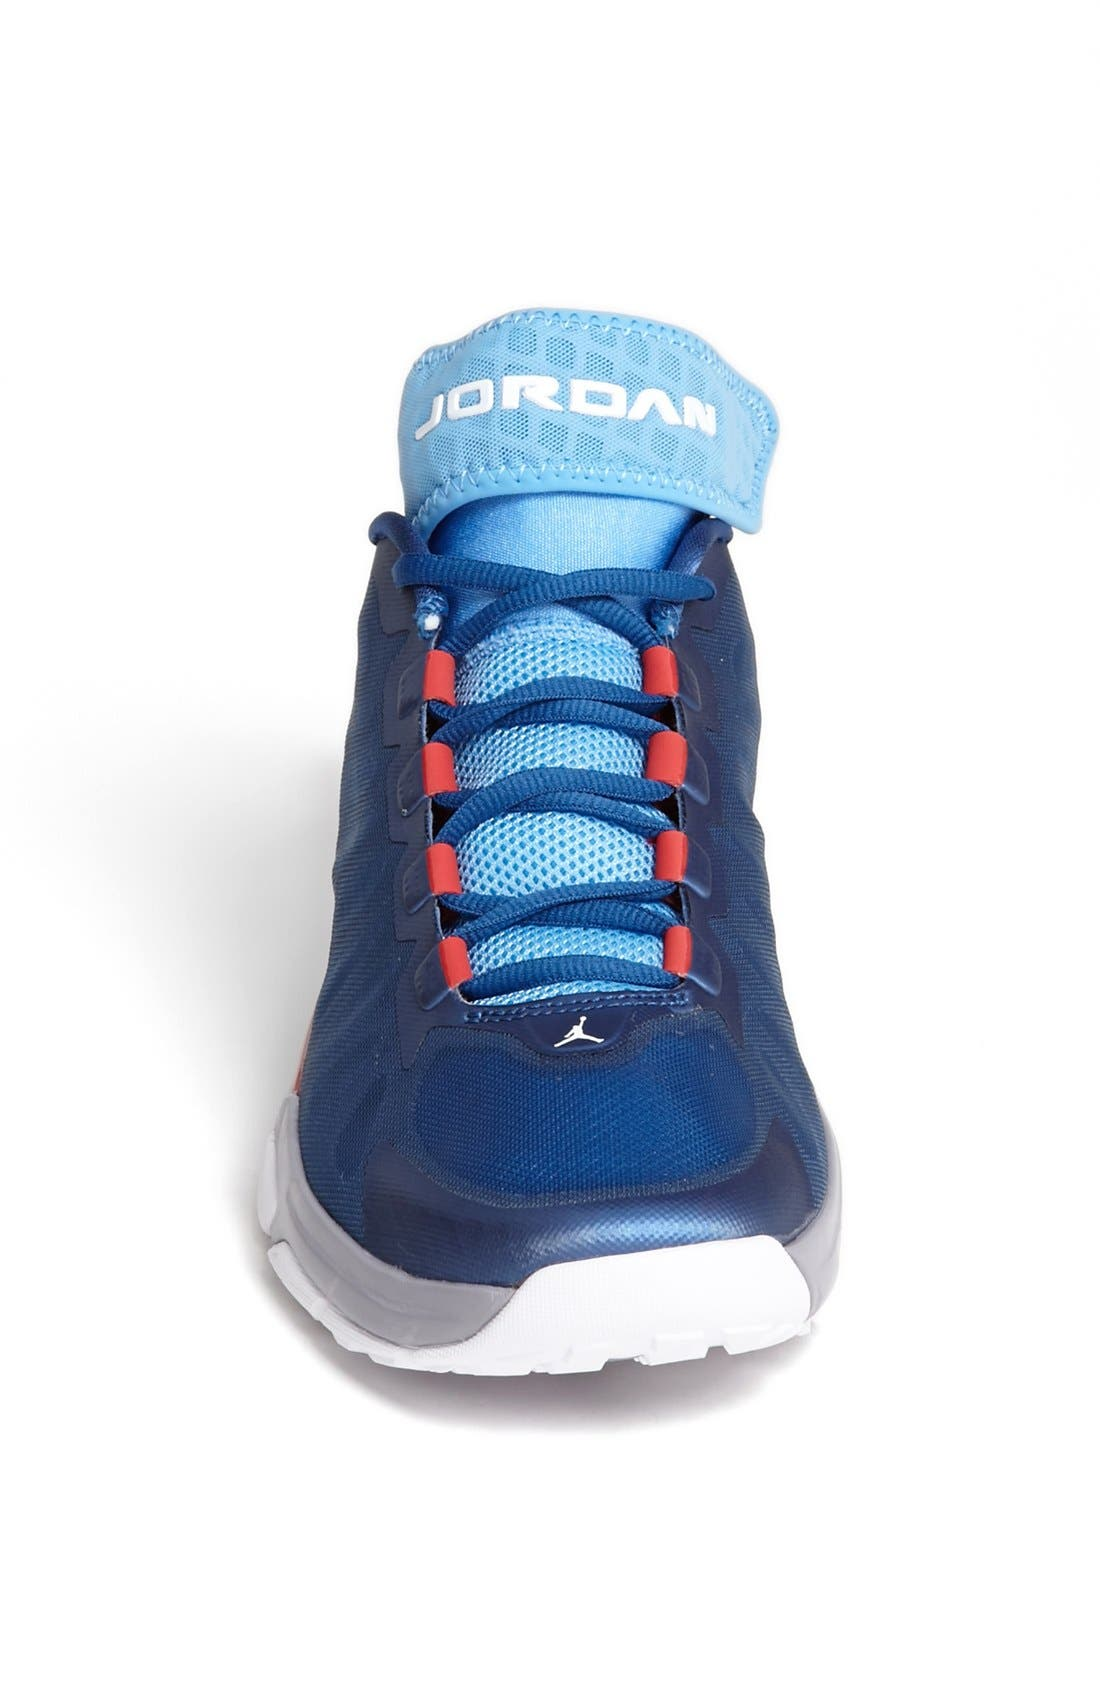 Alternate Image 3  - Nike 'Jordan Dominate Pro' Training Shoe (Men)